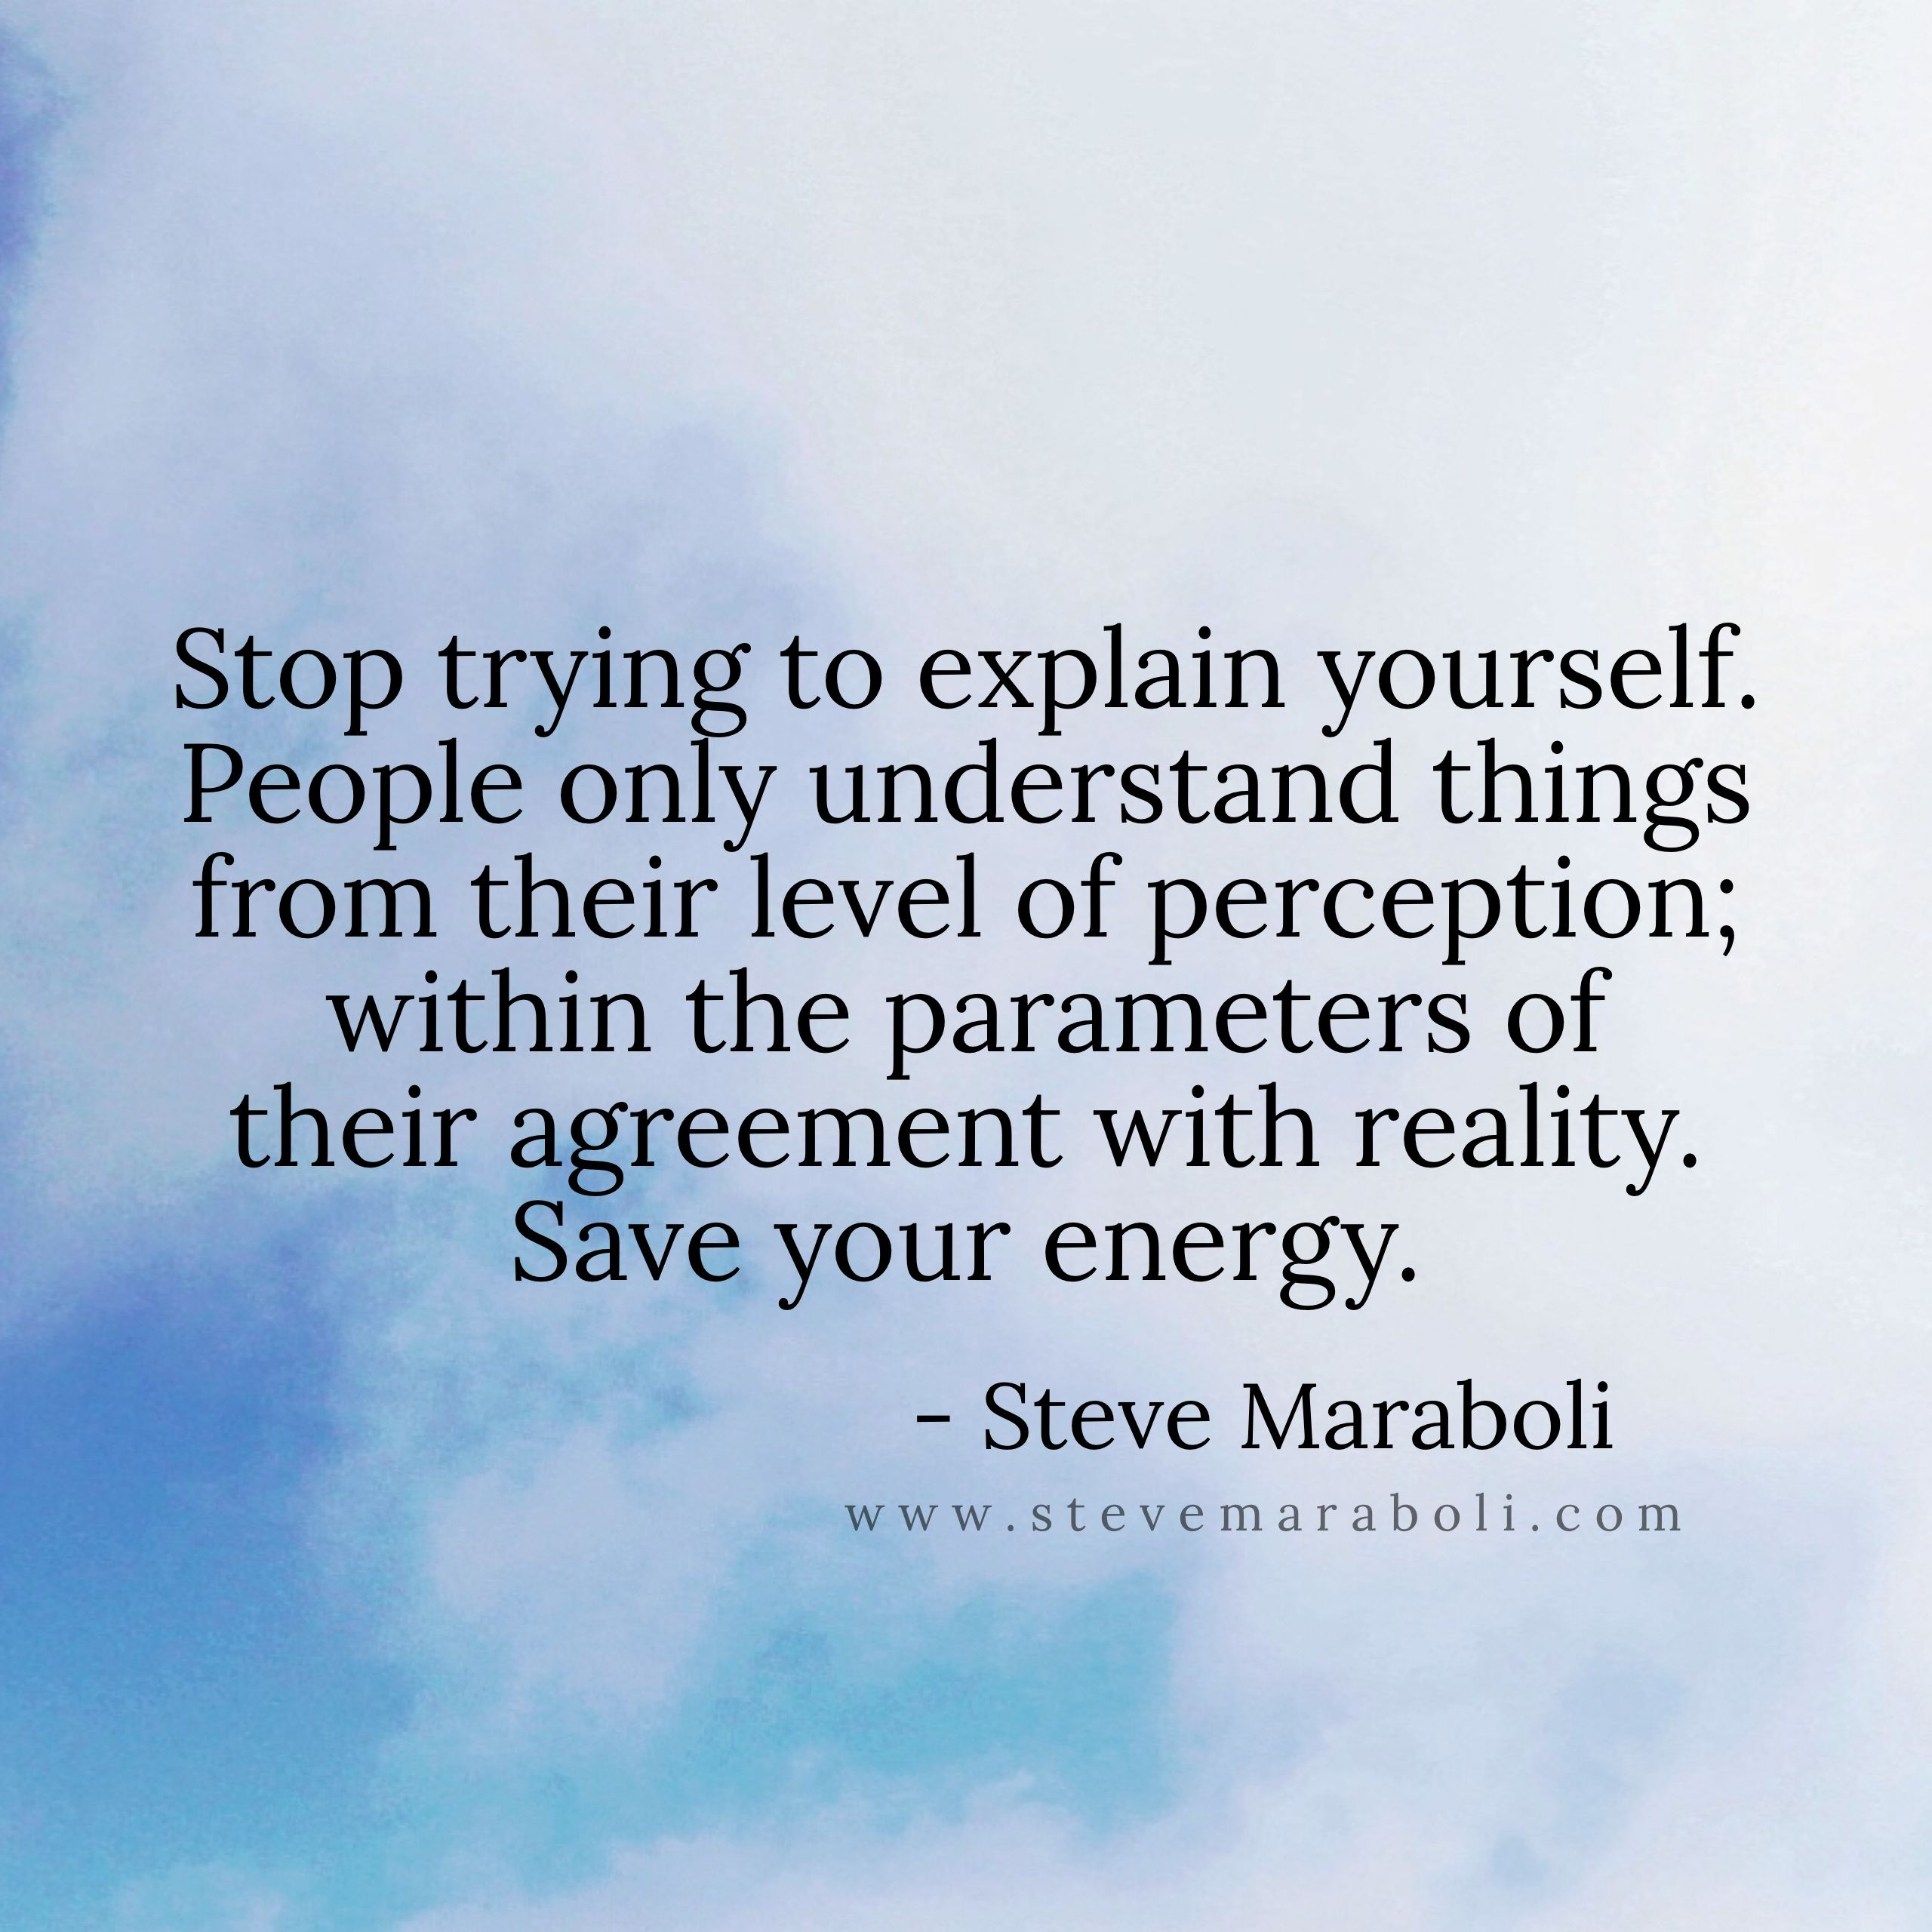 Quotes About Positive Energy Save Your Energy Steve Maraboli On Instagram  Pinterest